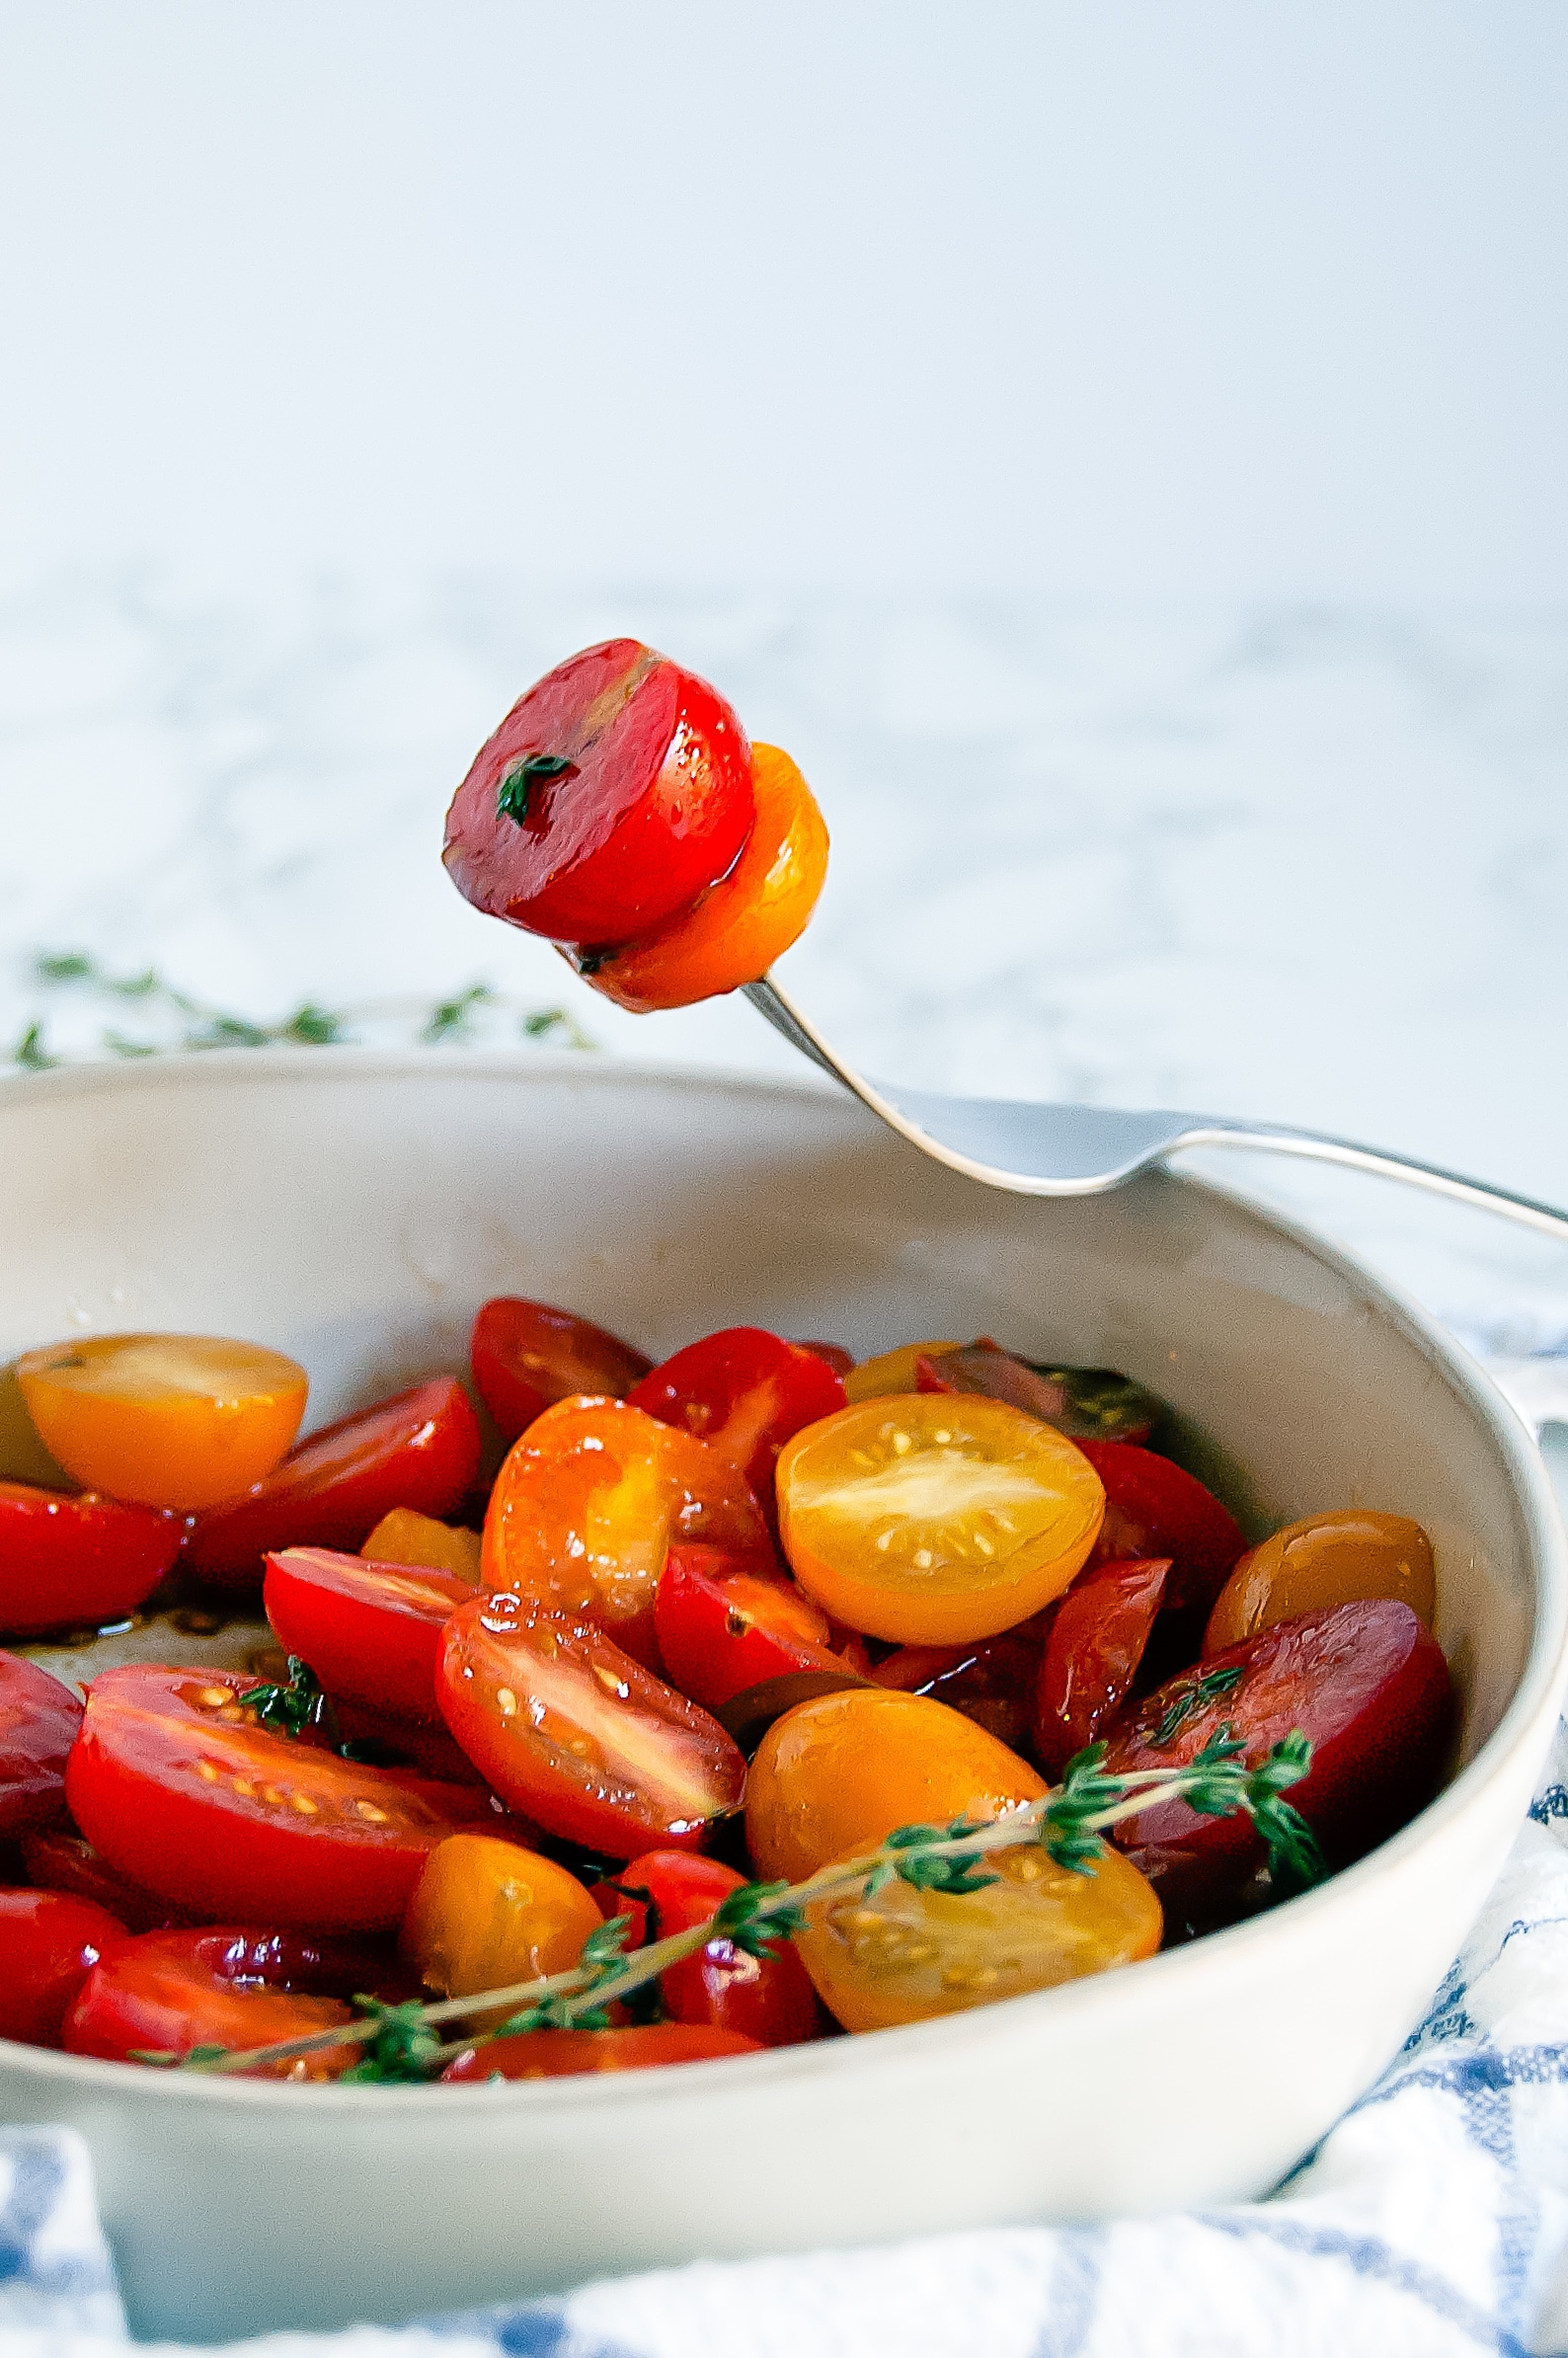 5-Minute Balsamic Thyme Tomato Salad is a light, fresh, simple salad side dish perfect for picnics and hot summer nights! | gluten-free, dairy-free, nut-free, soy-free, free of all other top 8 most common allergens | Nutrition to Fit